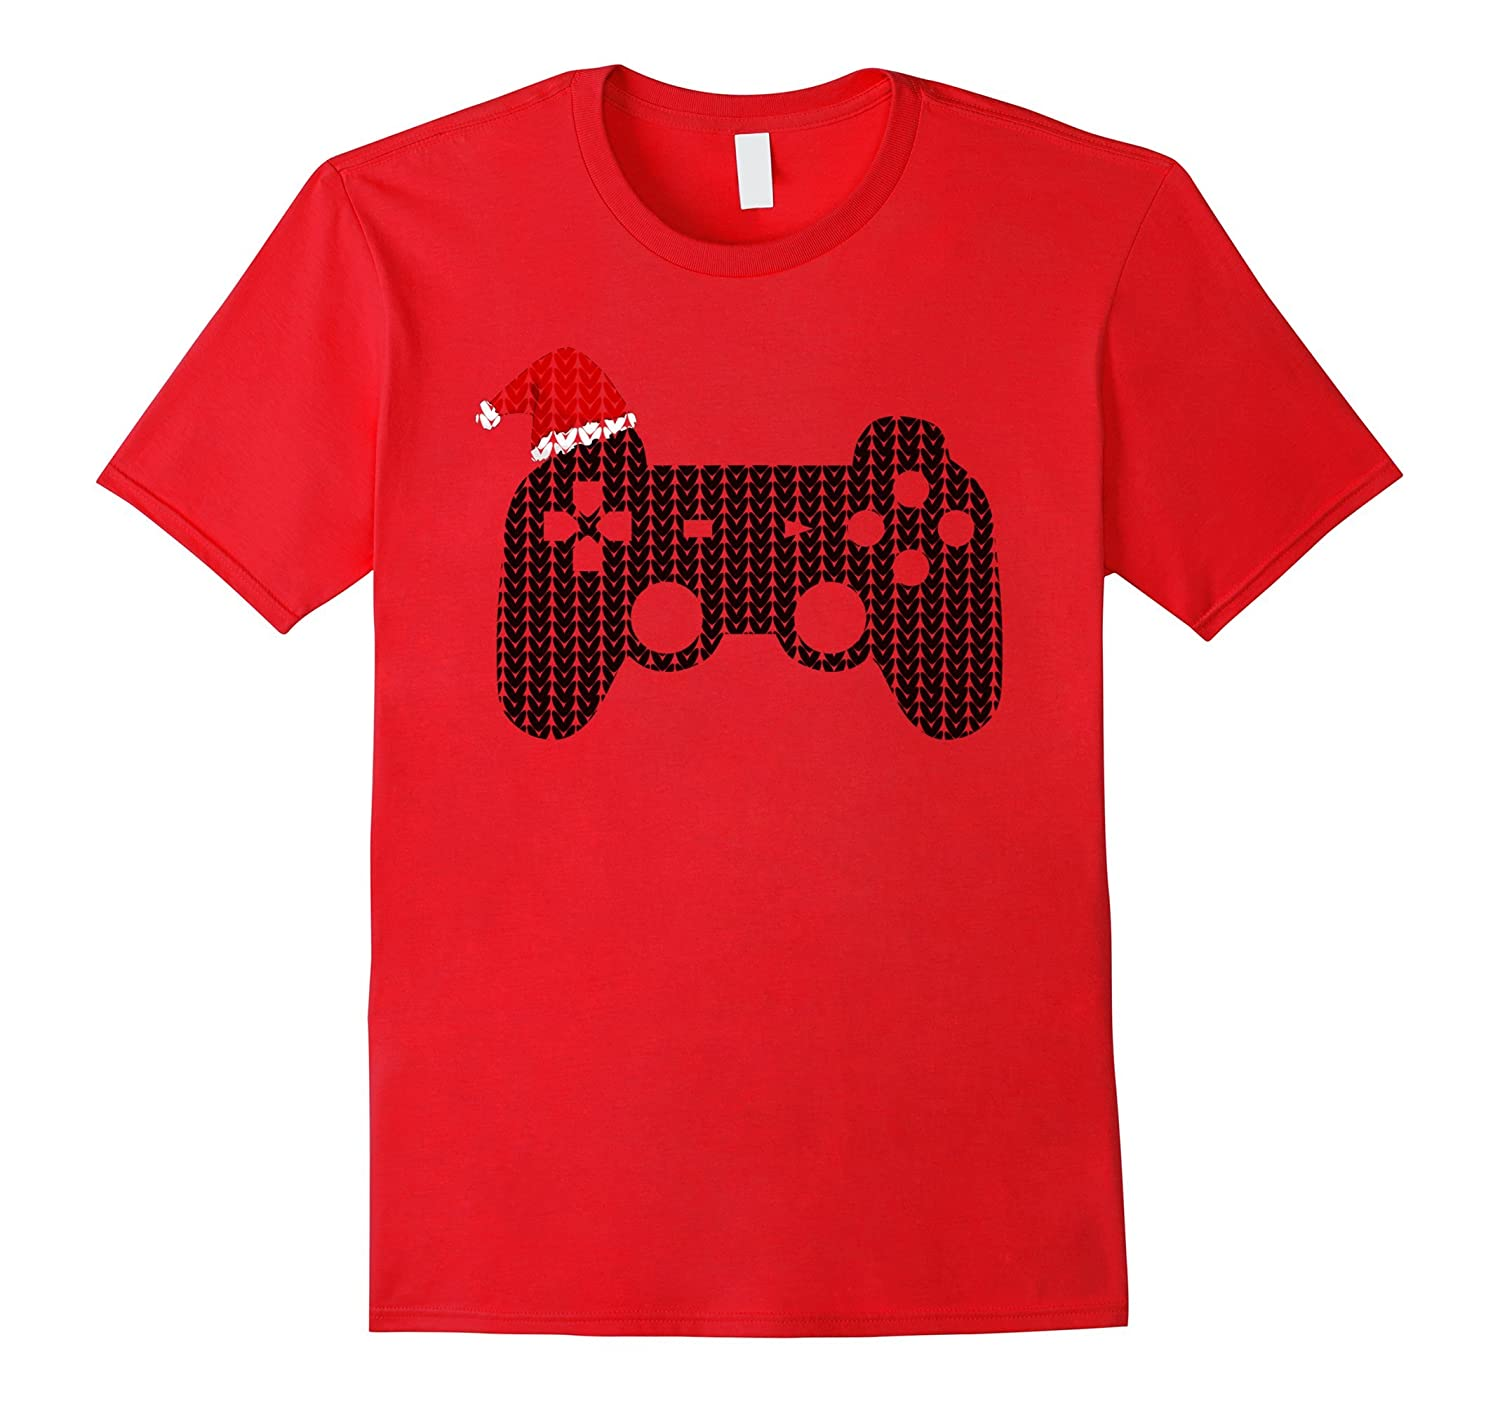 Funny Video Game T Shirt Ugly Christmas Sweater Gamer Shirt Anz